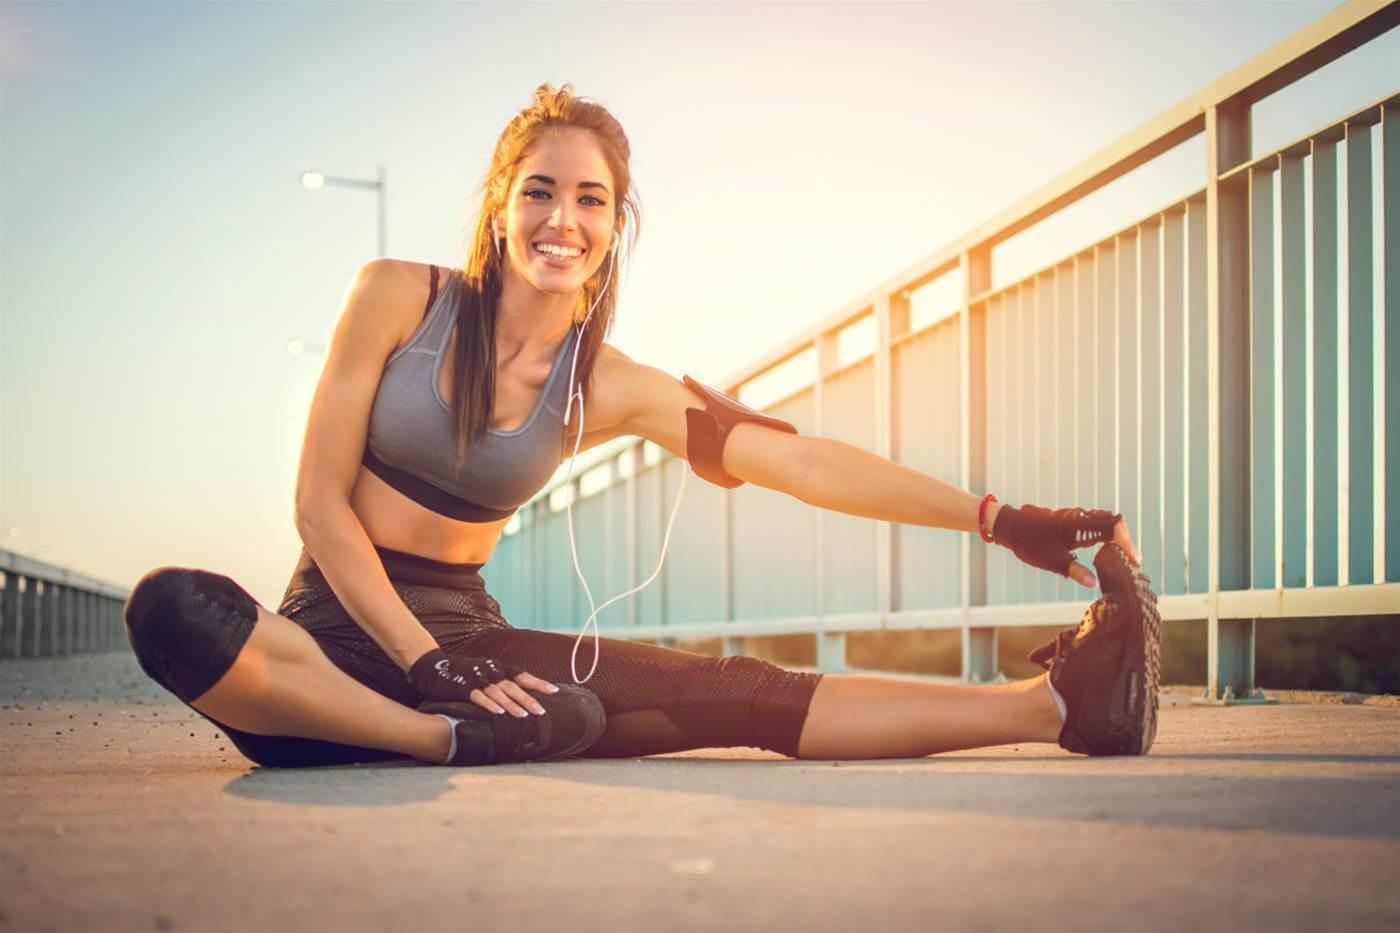 Increase your mobility with these 5 stretches for cyclists